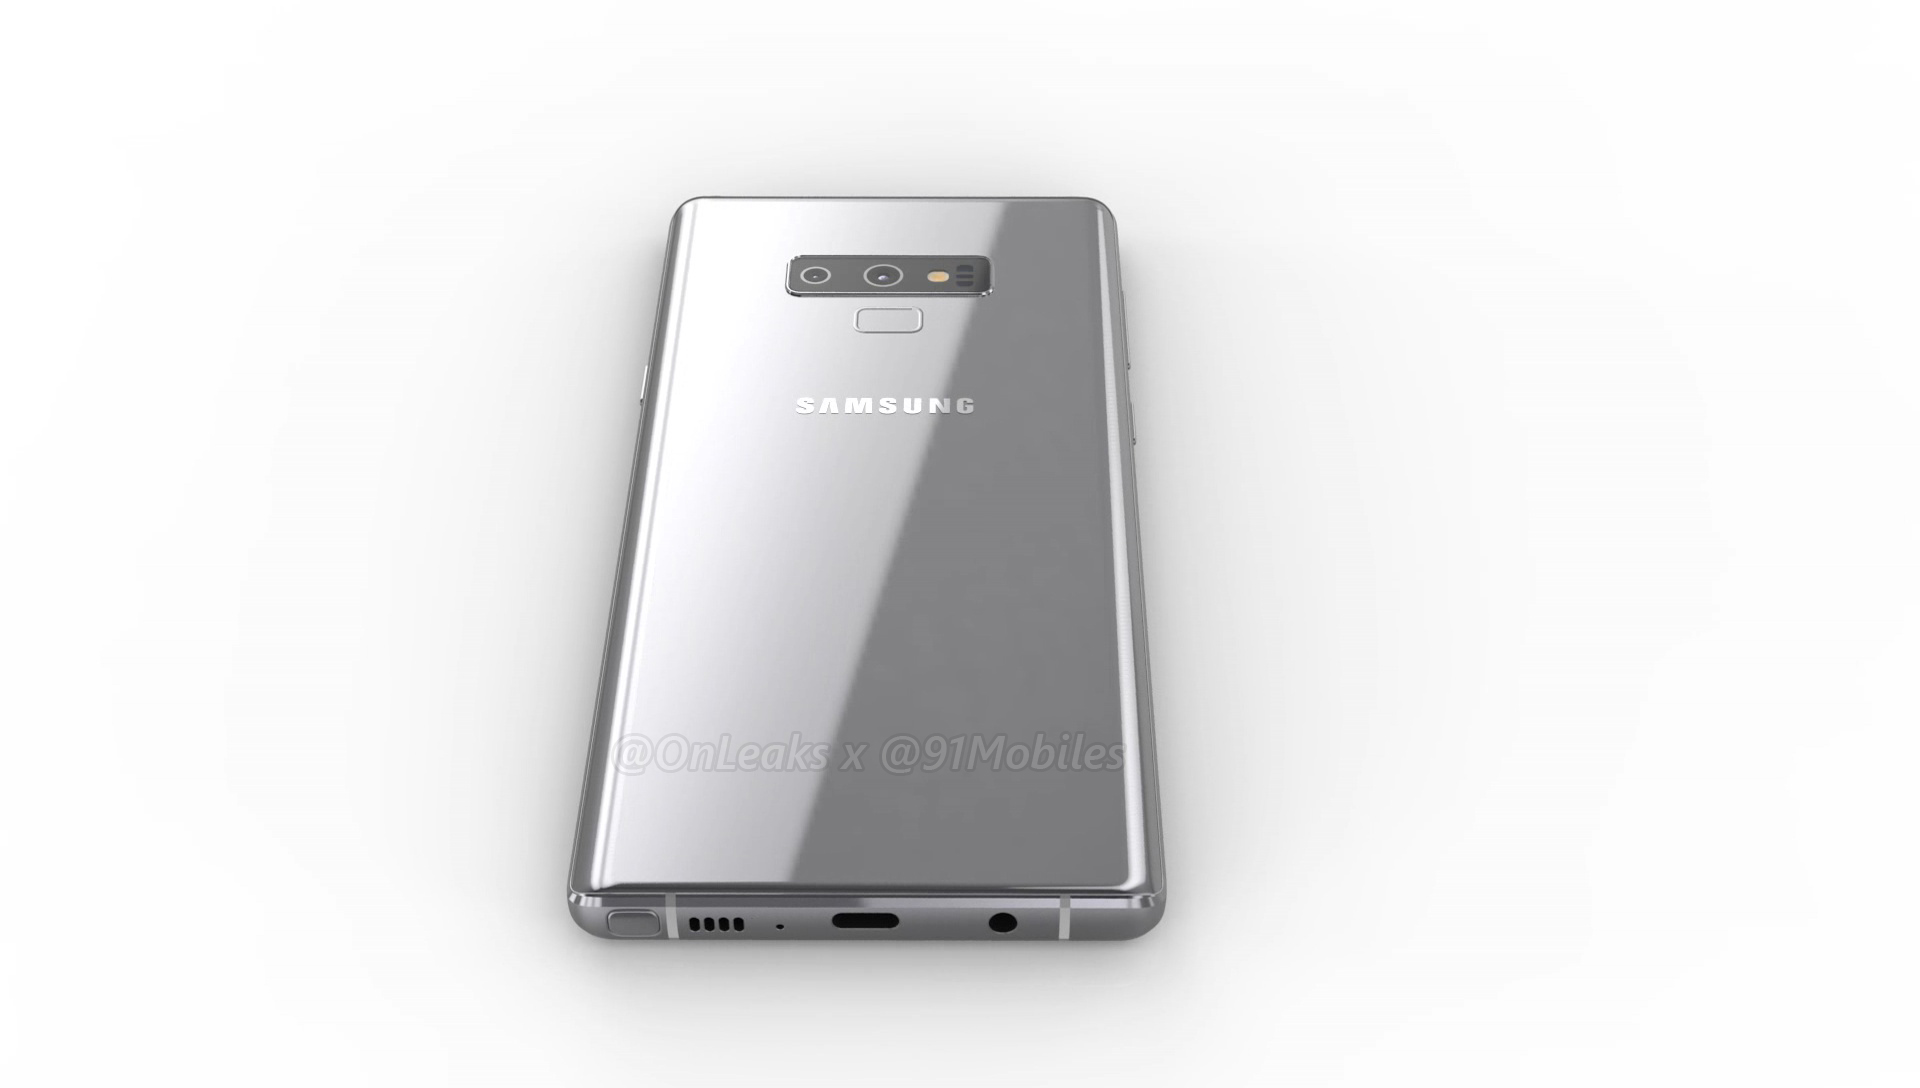 Samsung-Galaxy-Note-9-render-91mobiles-7